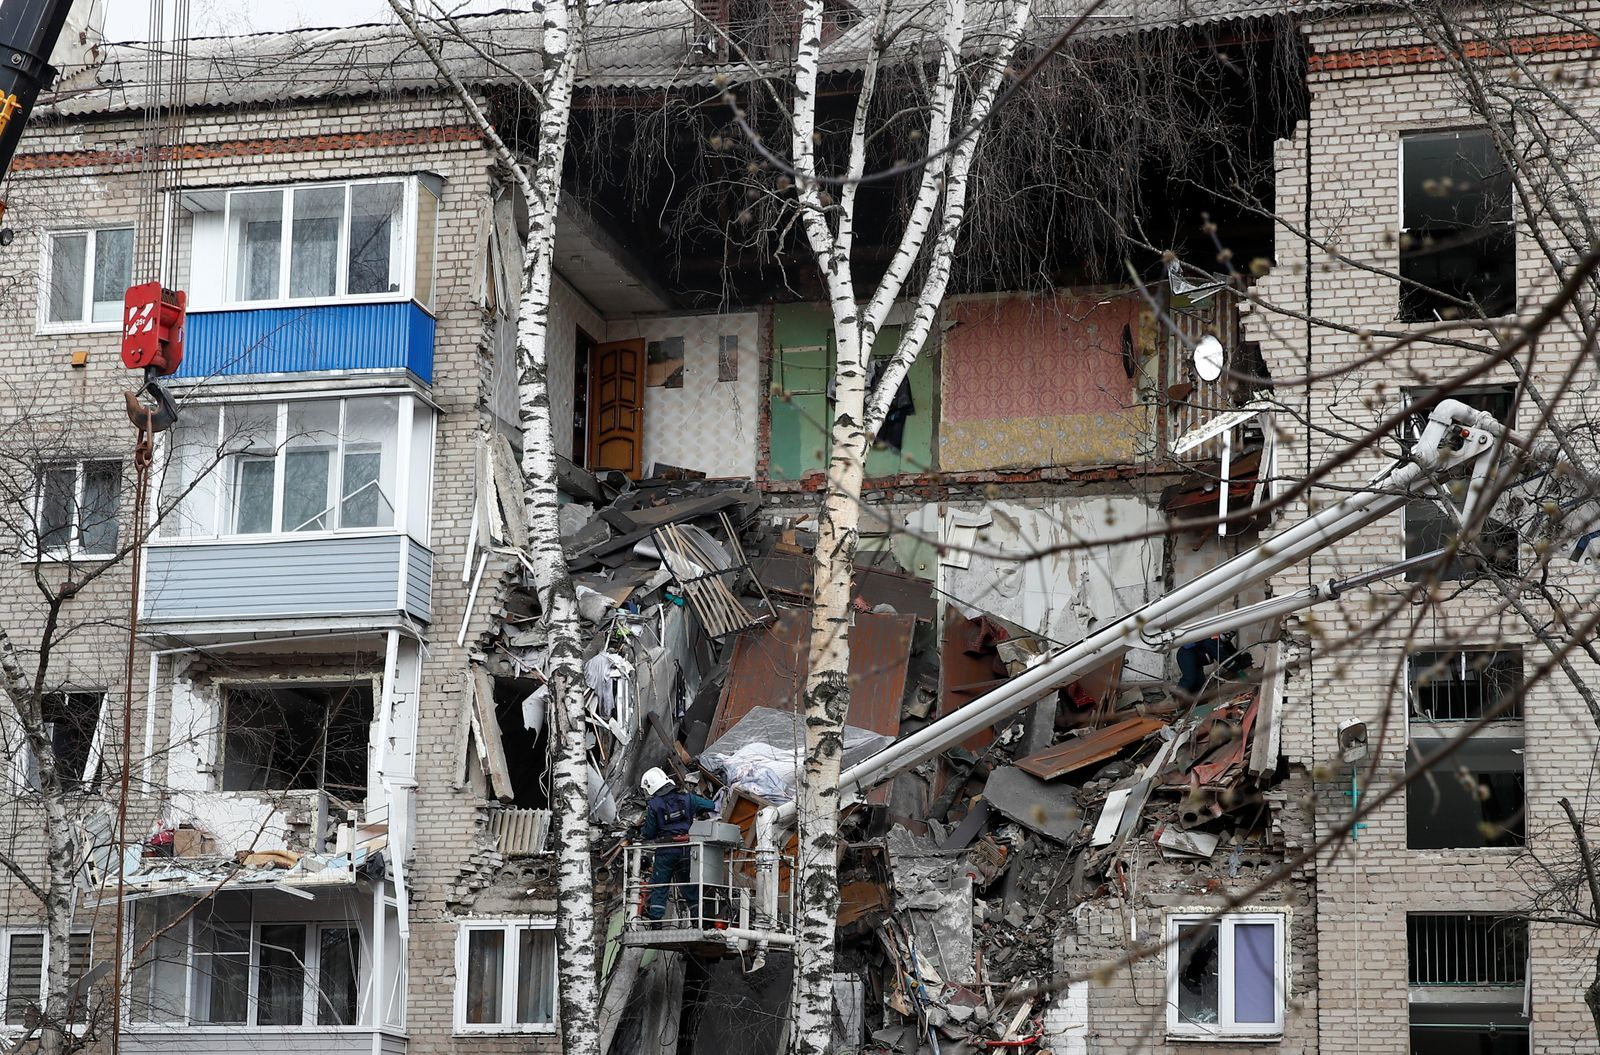 A view shows a damaged apartment block following an apparent gas explosion in Orekhovo-Zuyevo